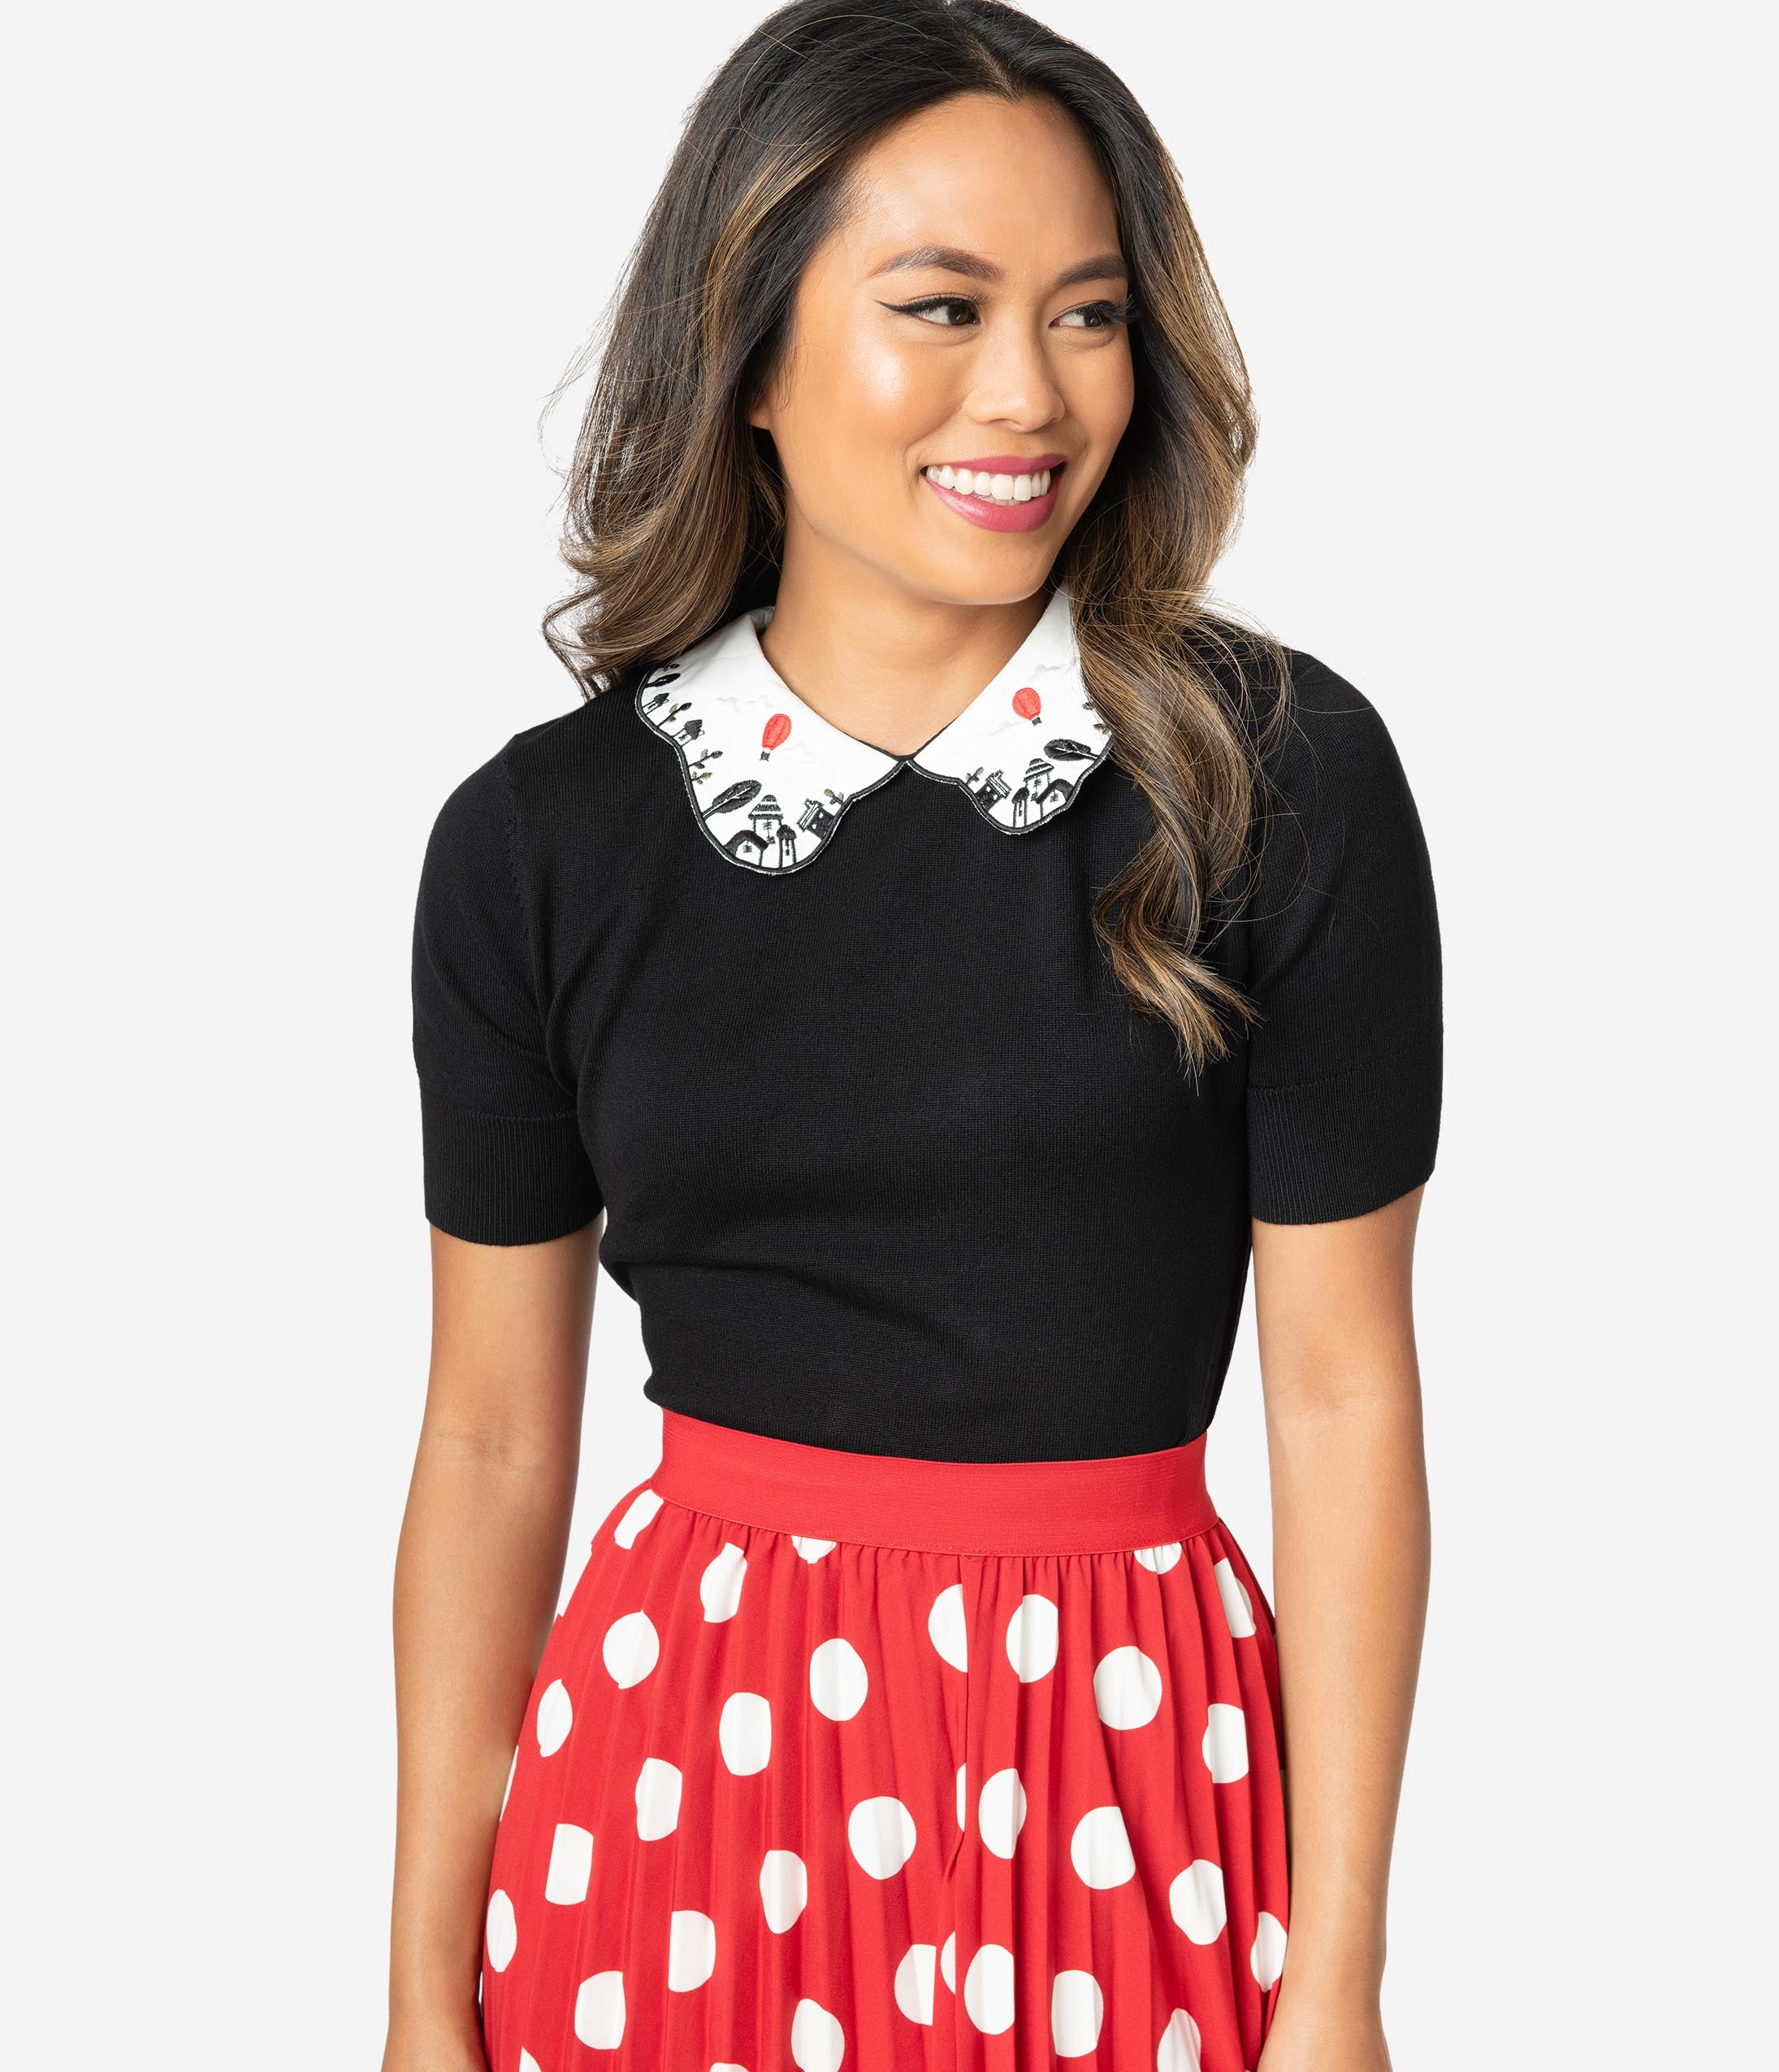 Easy Retro Halloween Costumes – Last Minute Ideas Hell Bunny Black  White Collar Embroidered Red Balloon Knit Sweater $58.00 AT vintagedancer.com